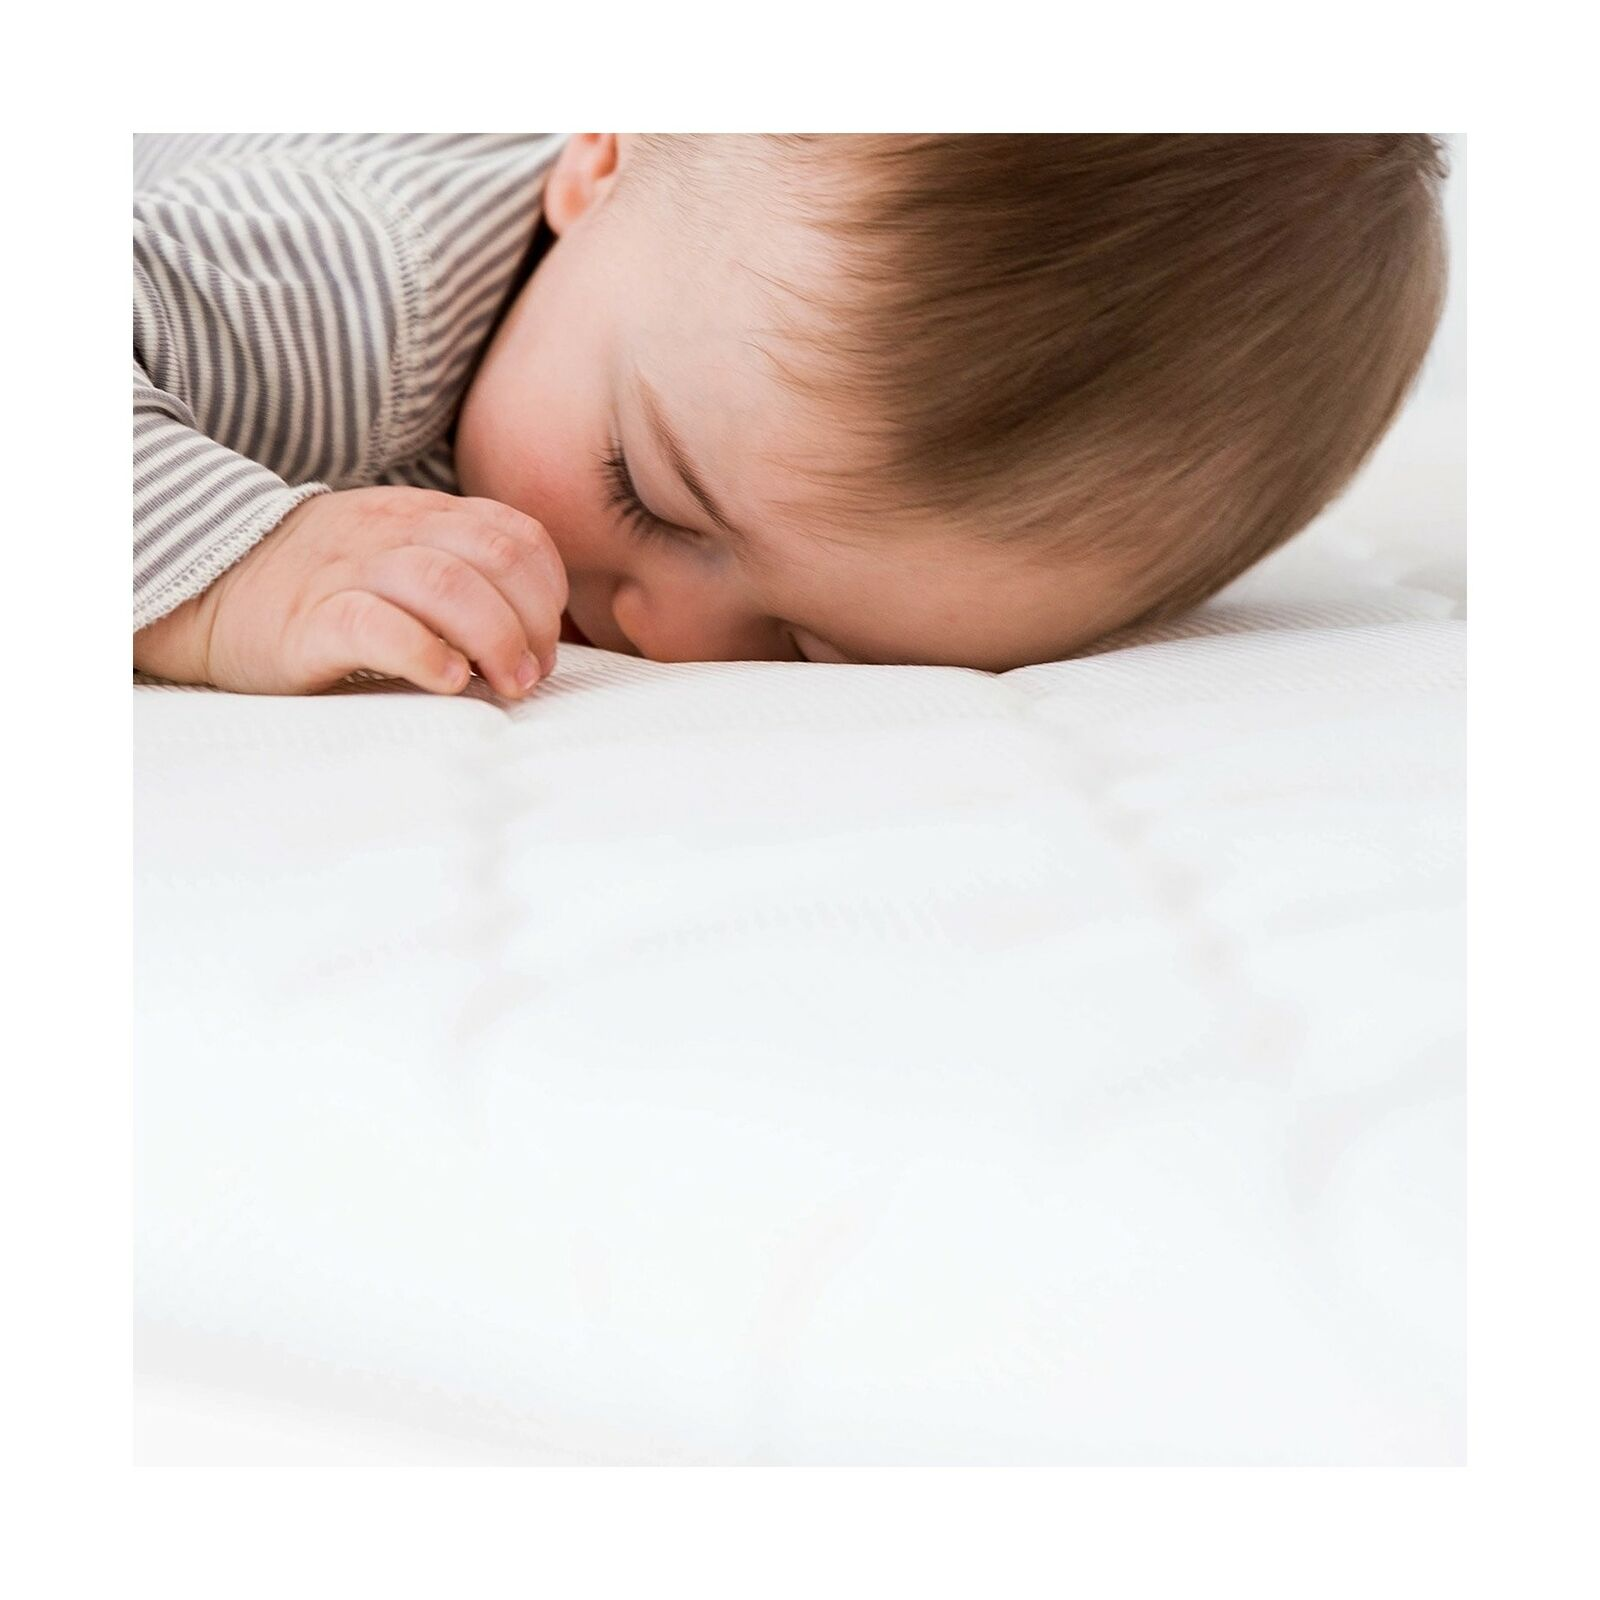 Newton Baby Crib Mattress And Toddler Bed 100 Breathable Proven To Reduce For Sale Online Ebay